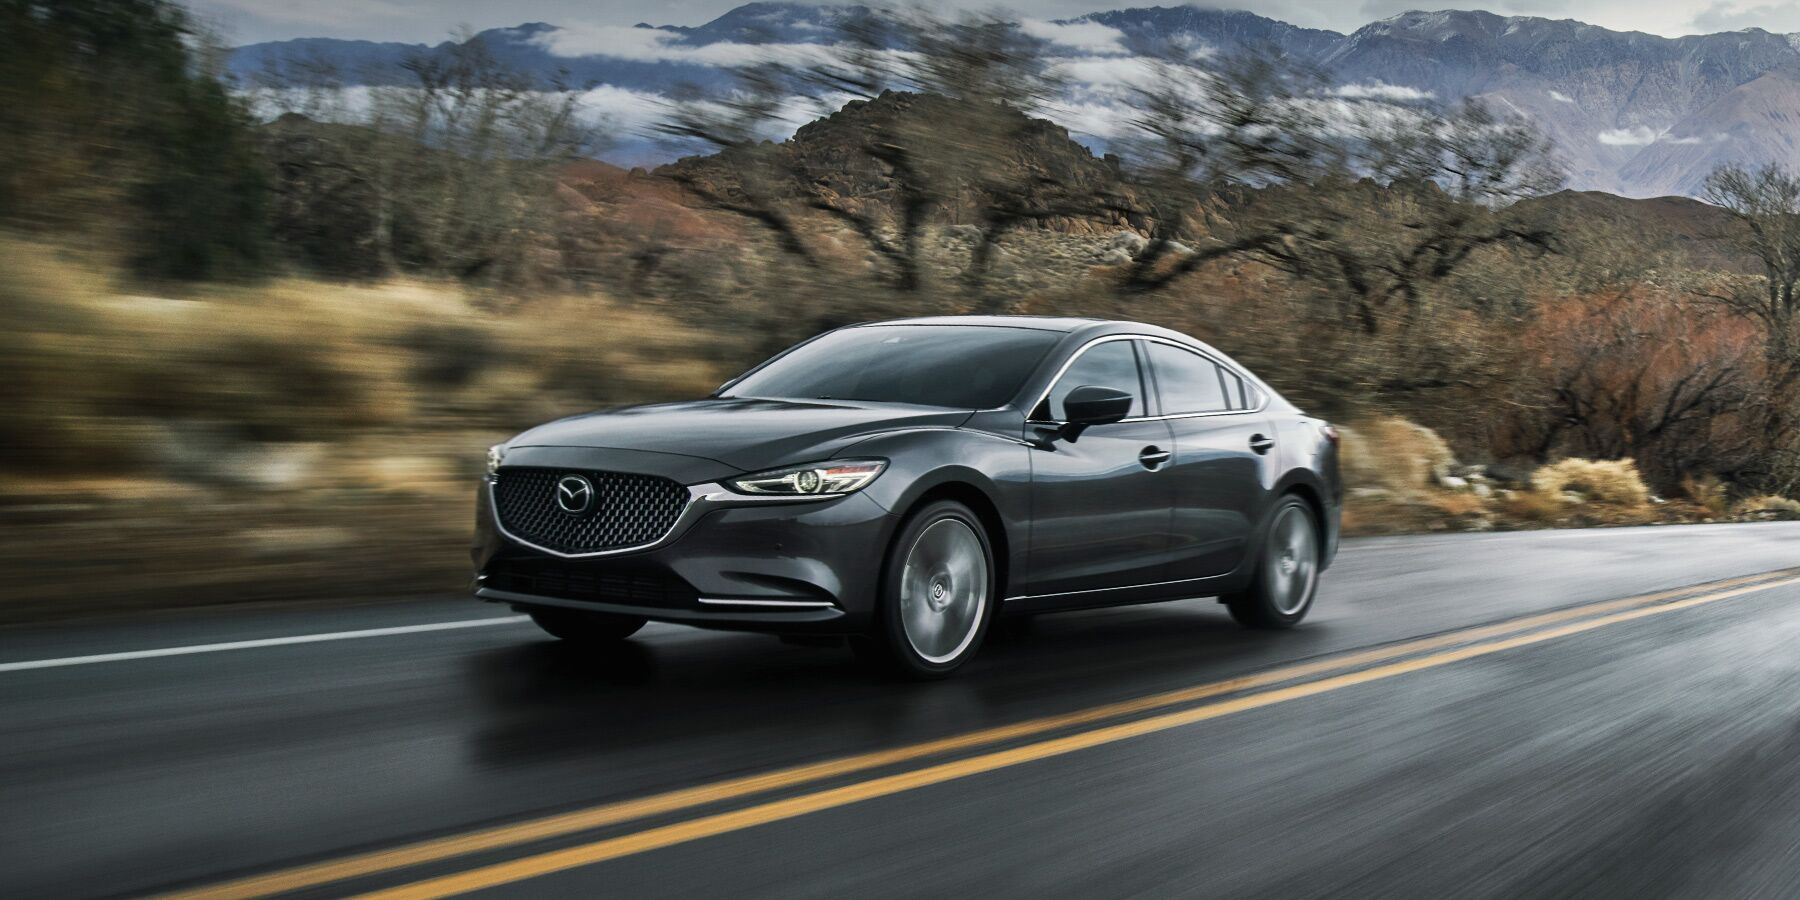 2020 Mazda6 driving down the highway